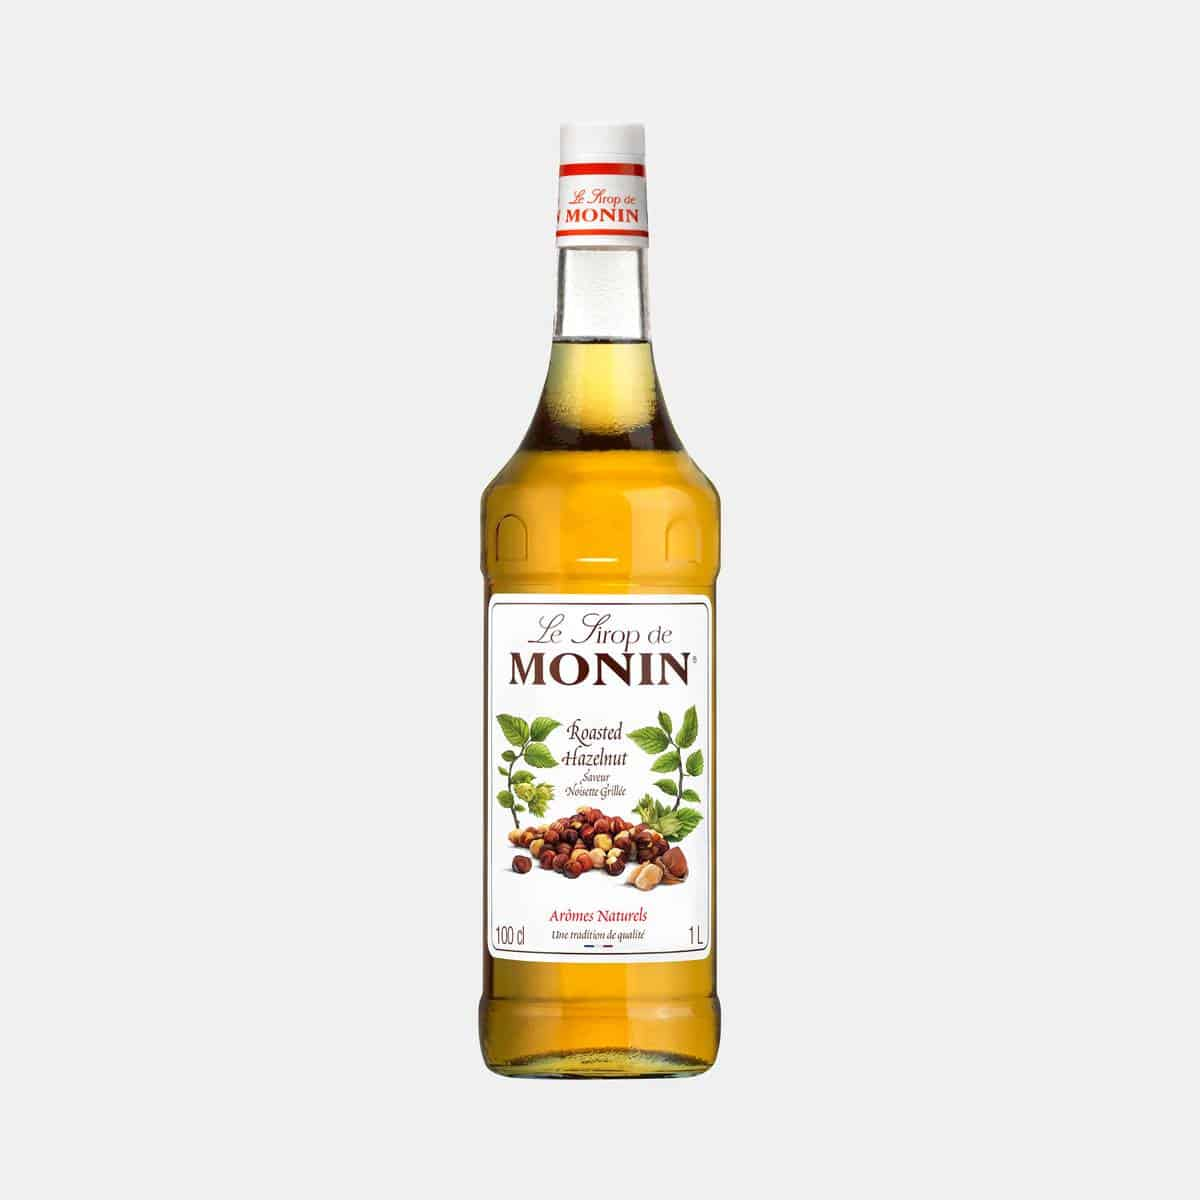 Monin Roasted Hazelnut Syrup 1 Liter Glass Bottle